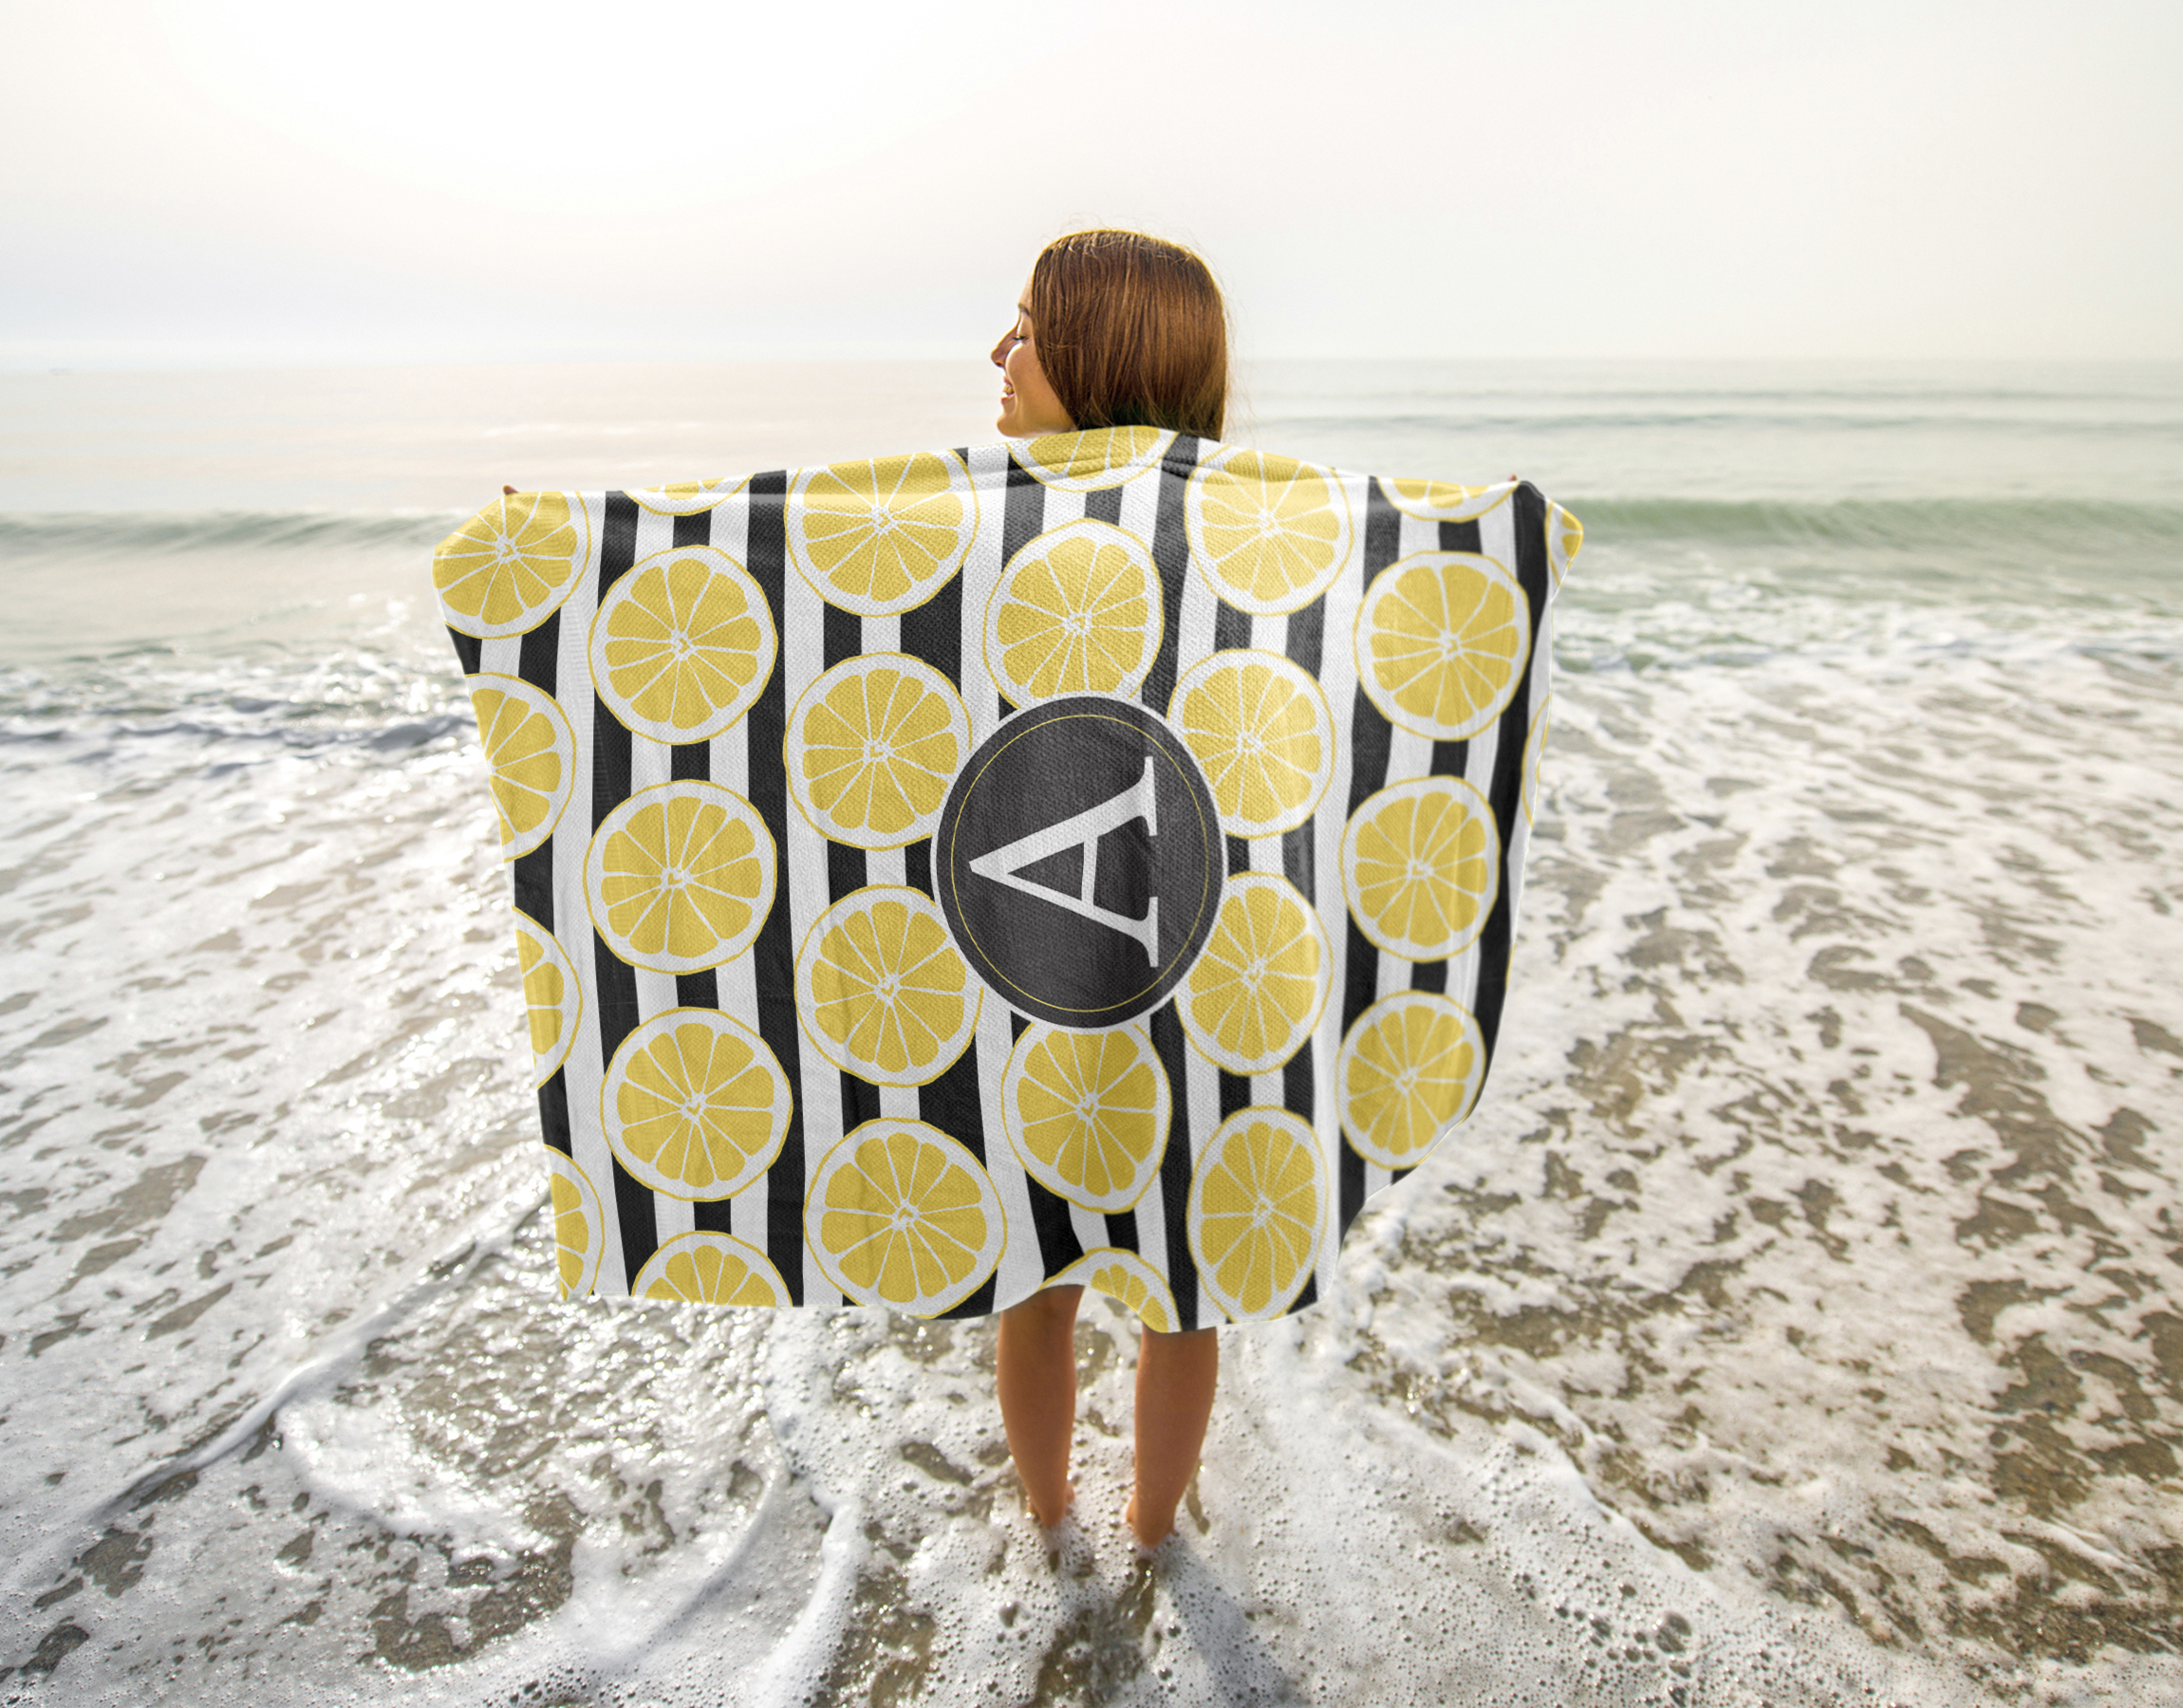 lemon-stripes-beachtowel-mockup.jpg